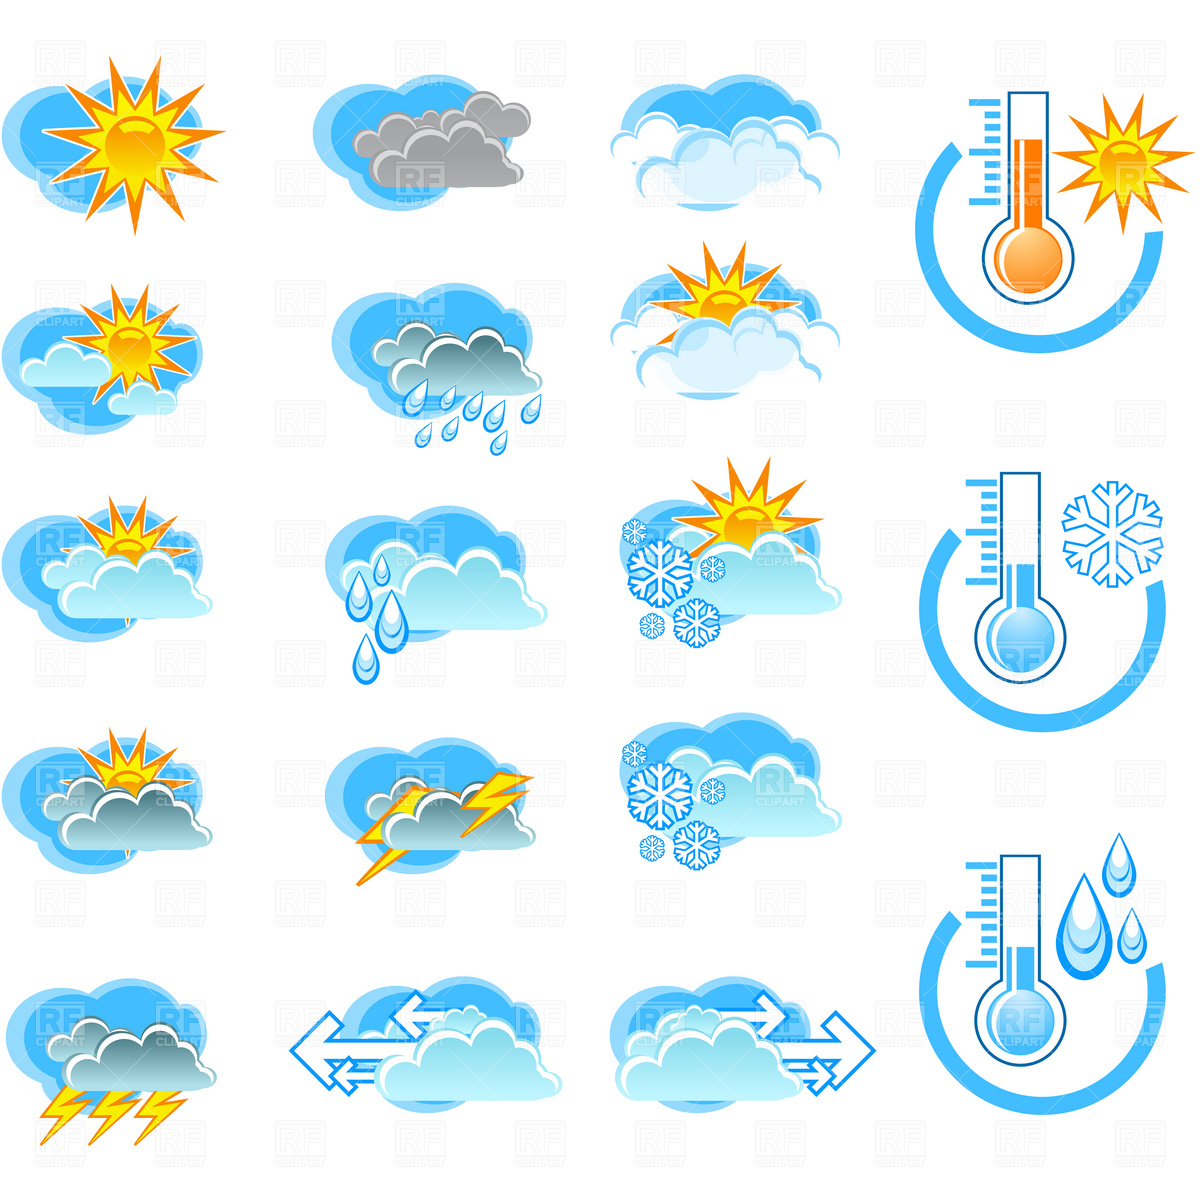 6 Royalty Free Weather Icons Images